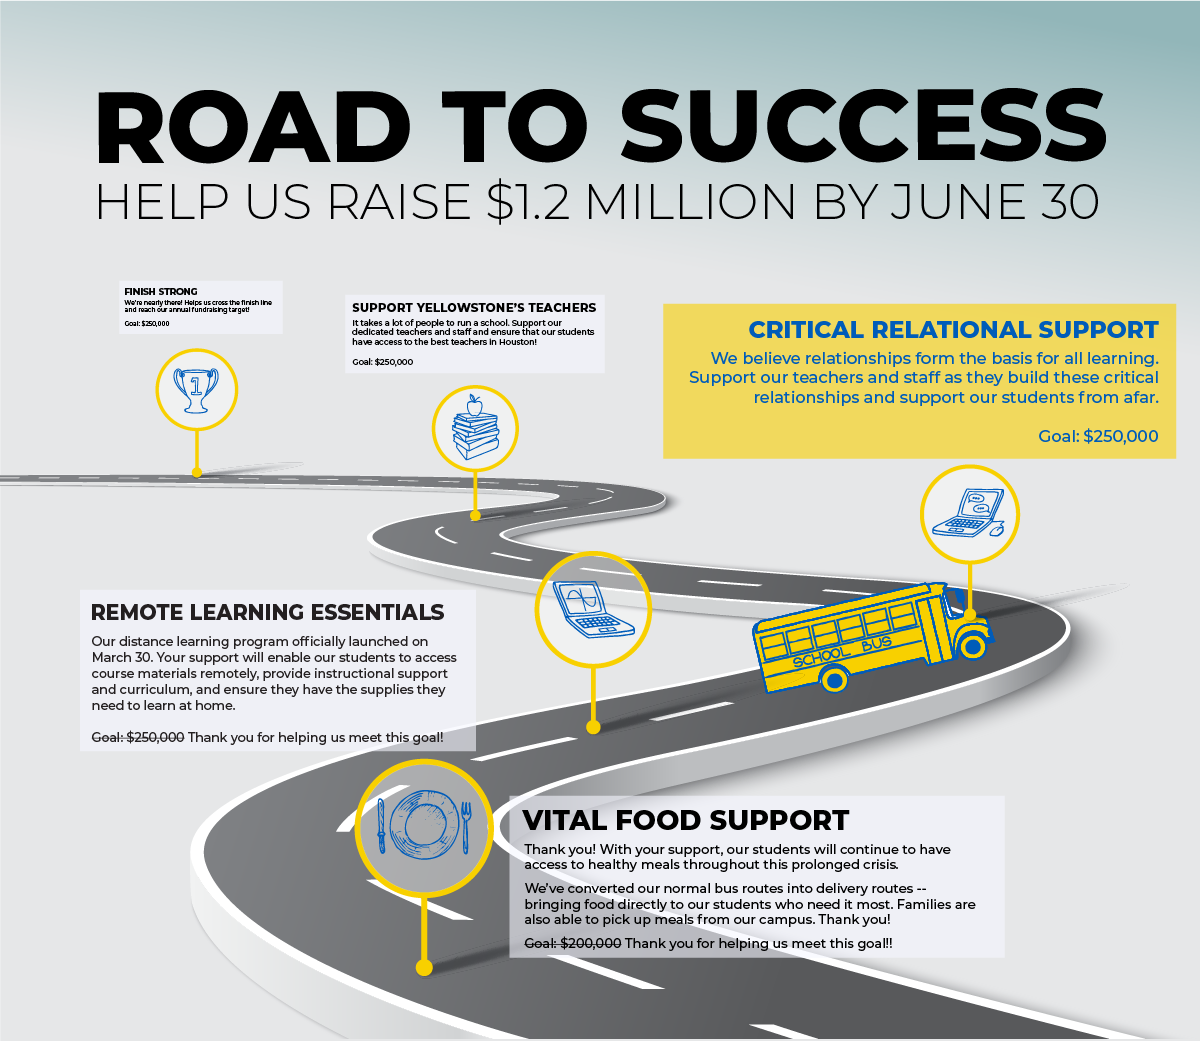 Road to Success: Help us raise $1.2 million by June 30!